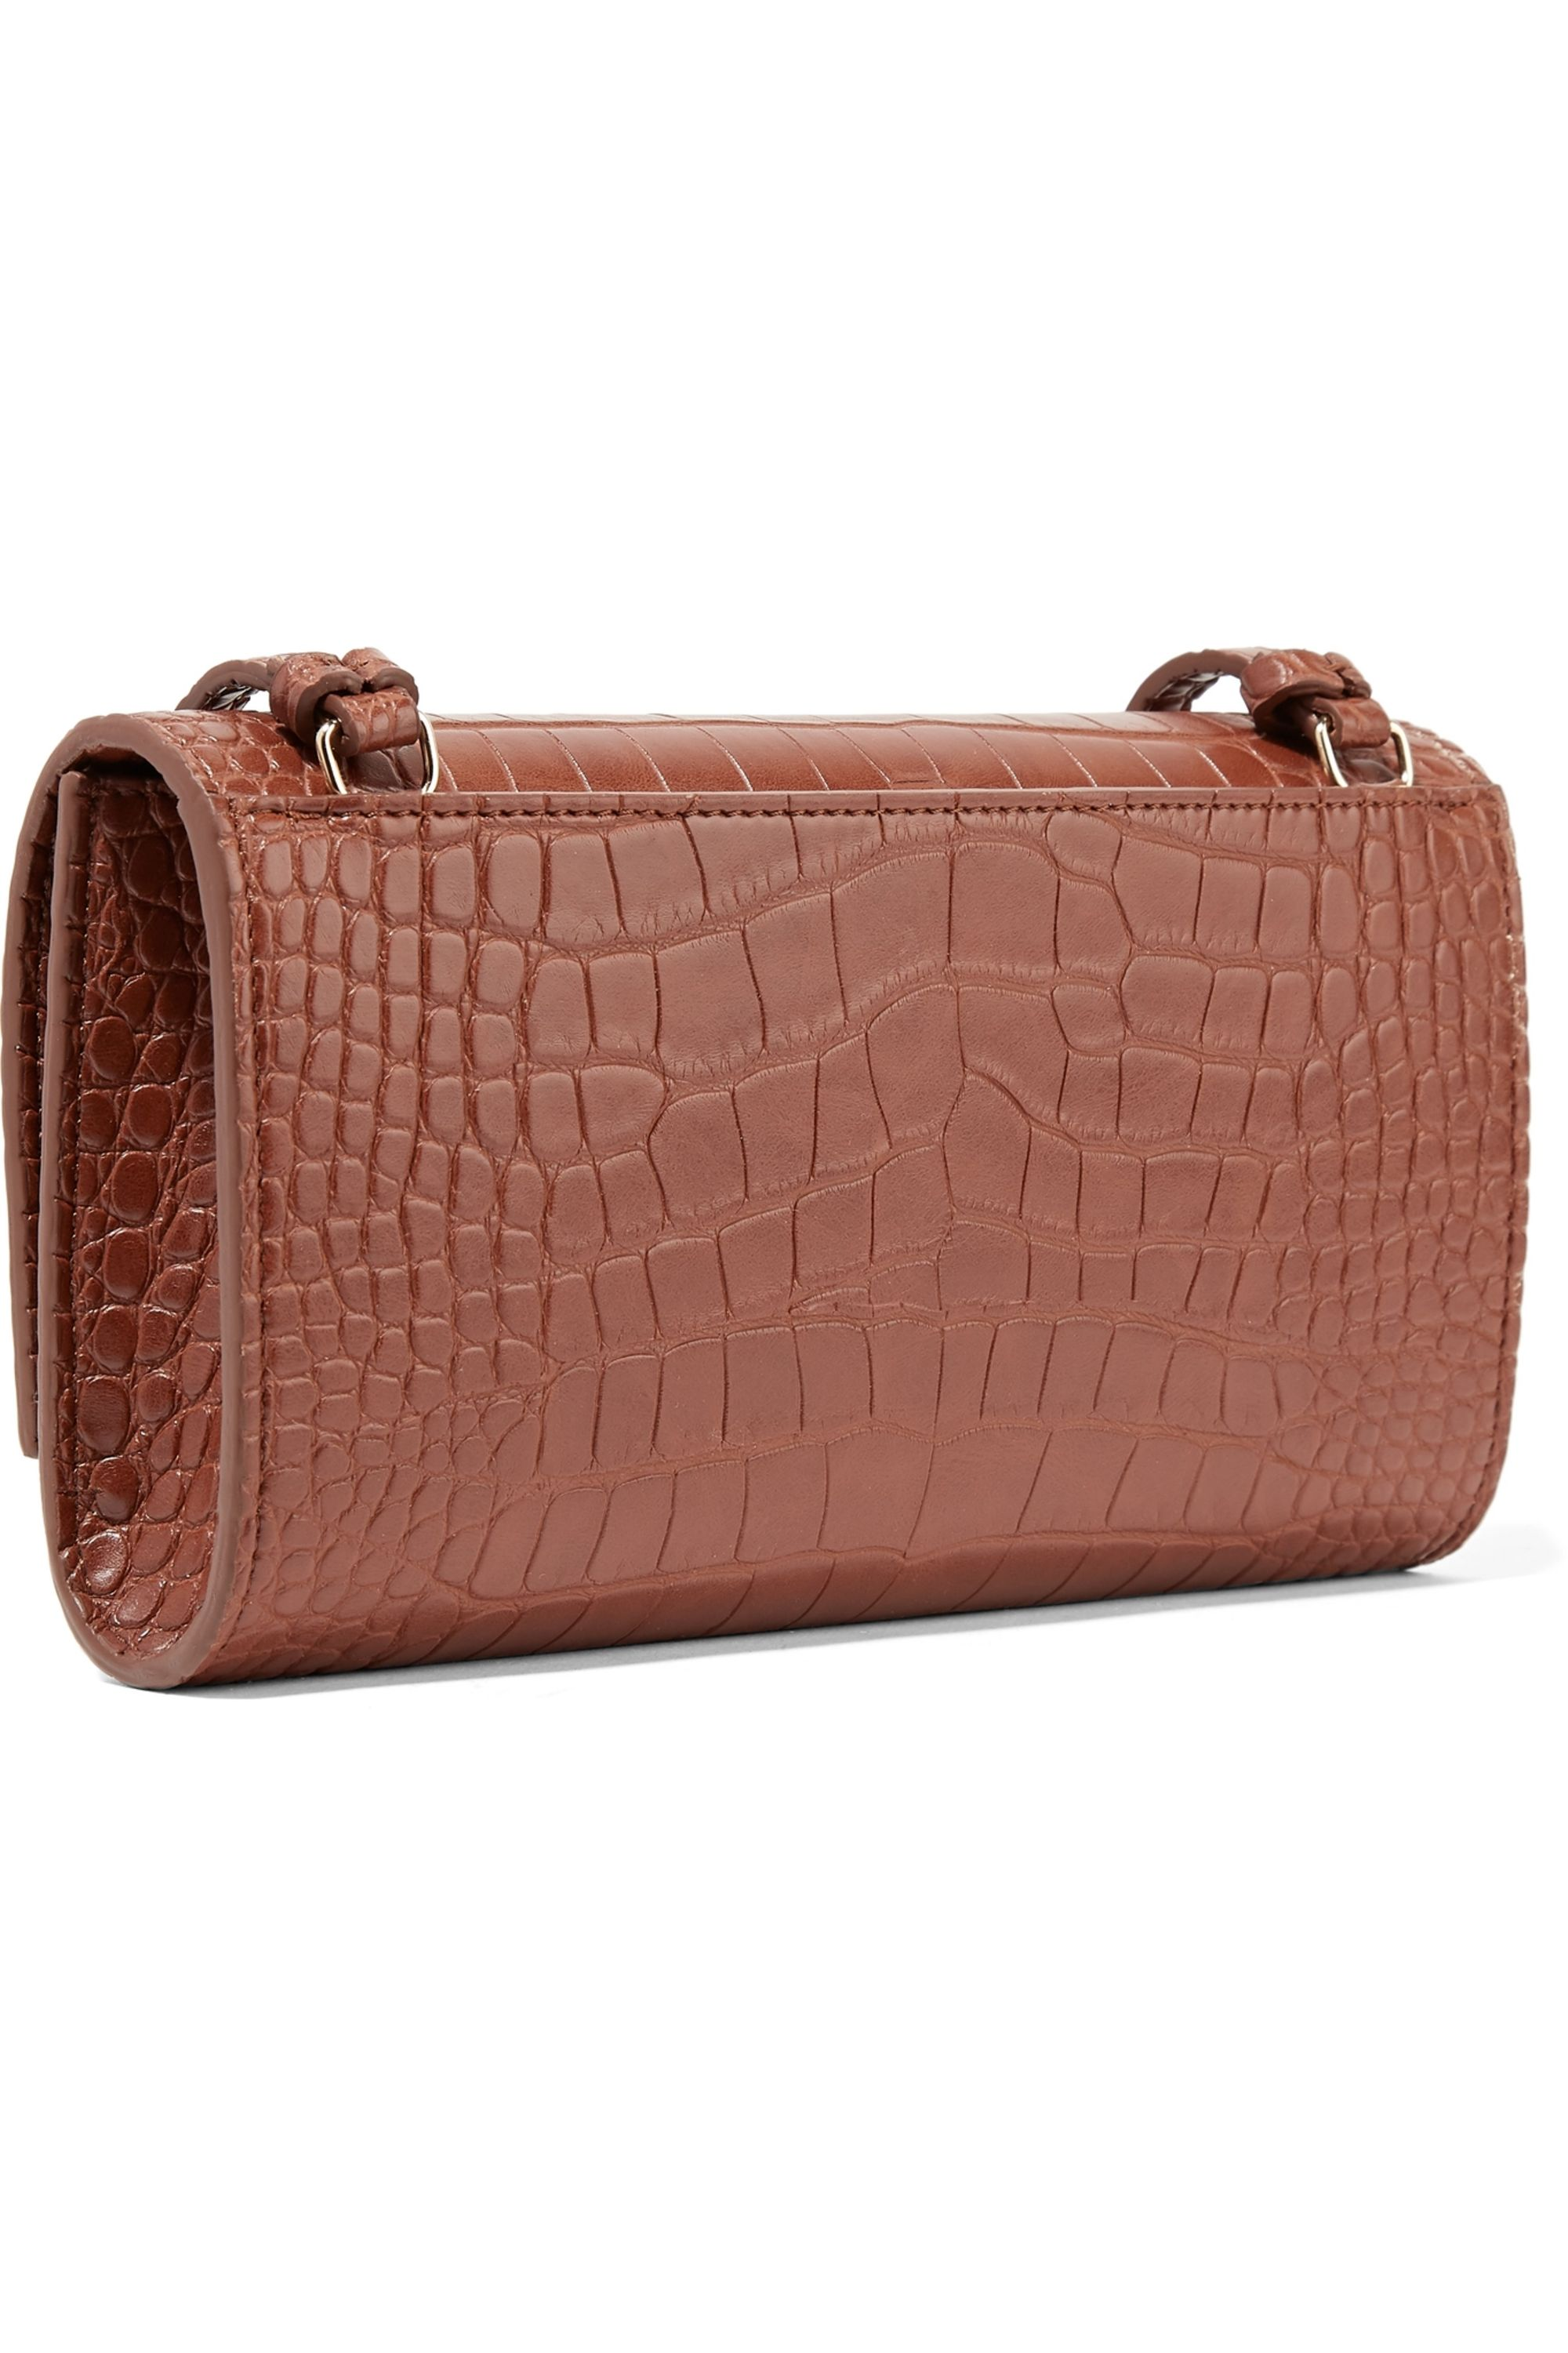 Nanushka Day croc-effect vegan leather shoulder bag